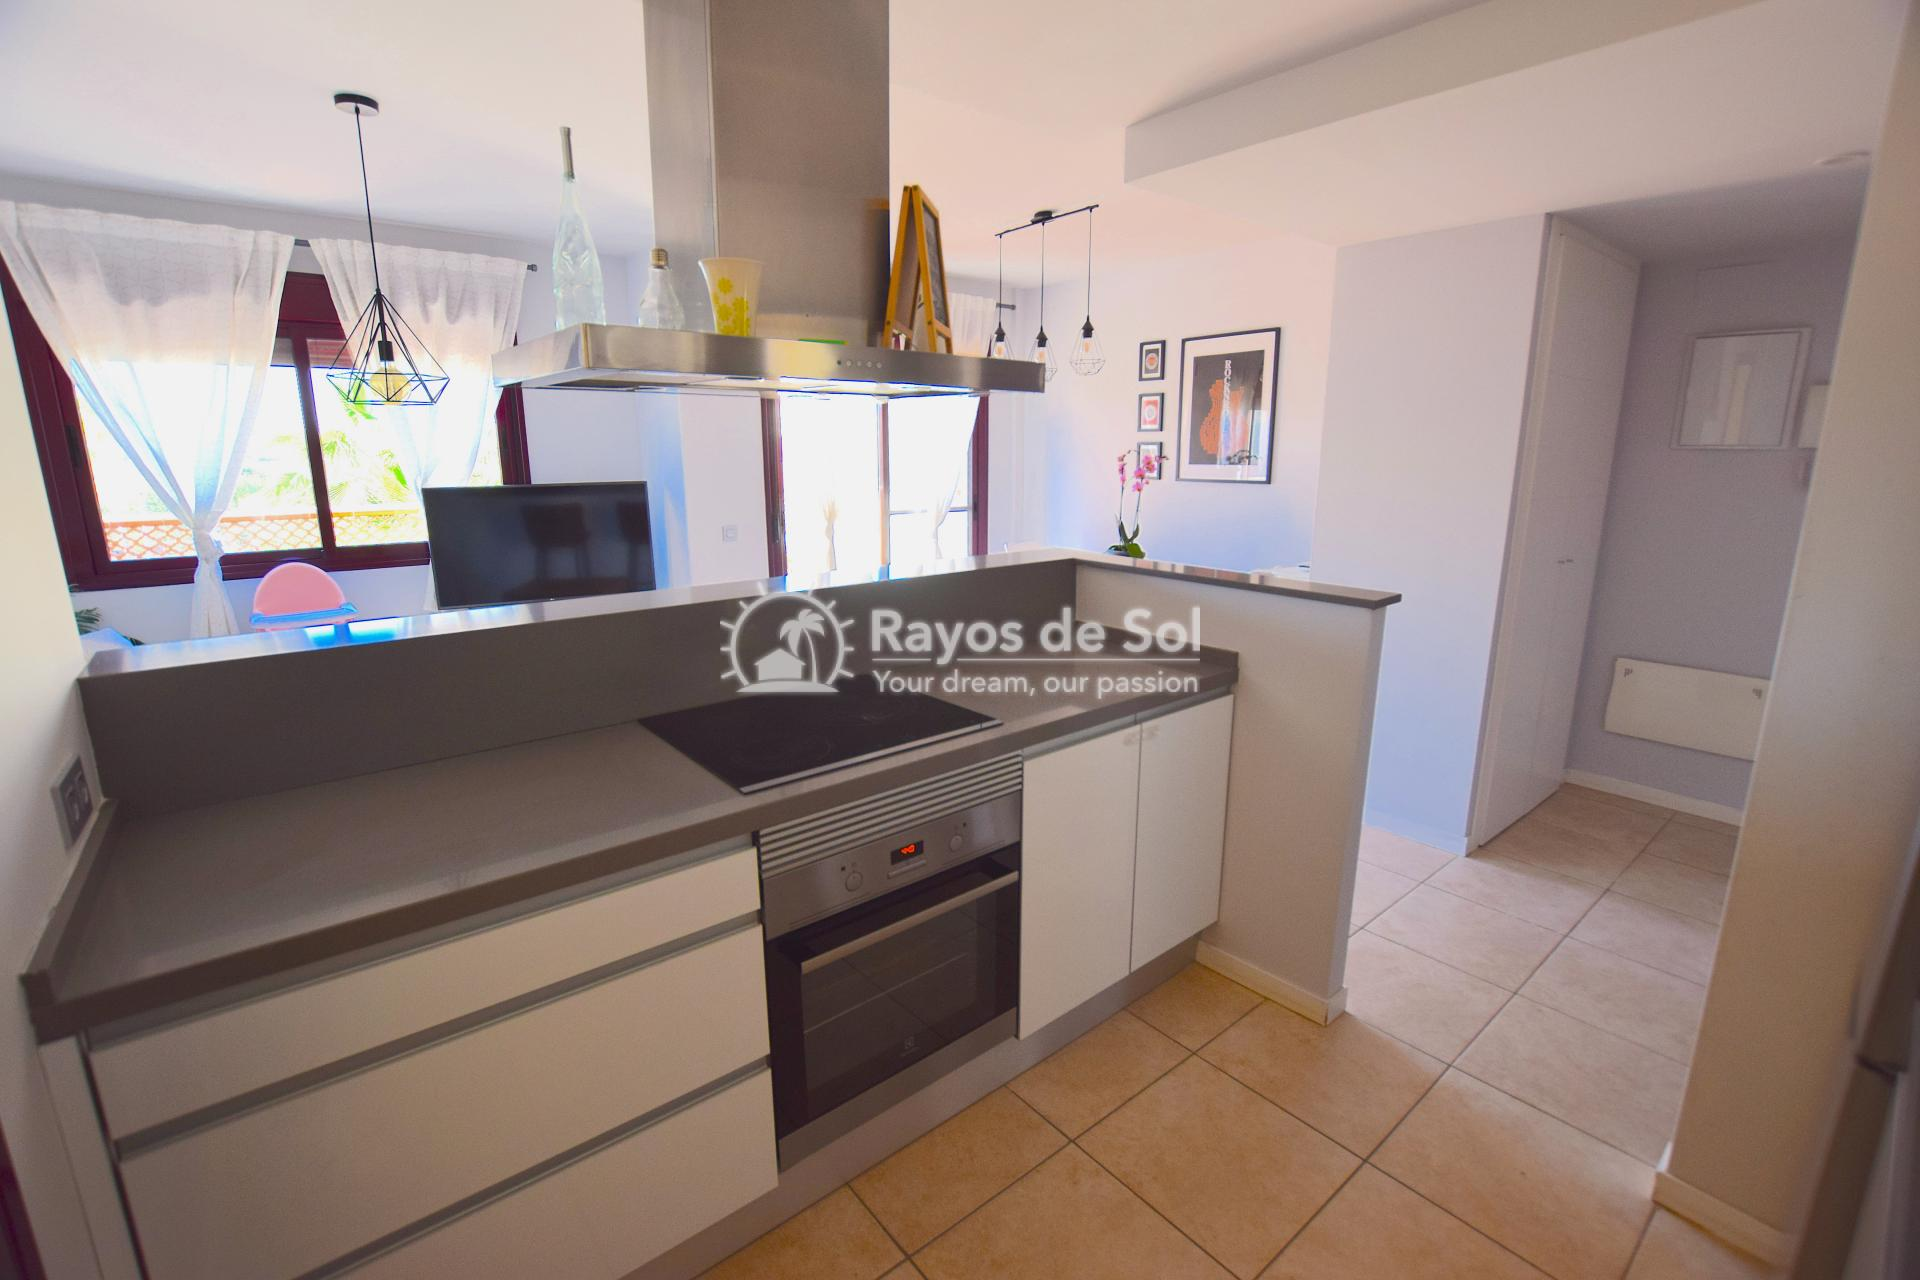 Penthouse with stunning views  in Los Alcazares, Costa Cálida (LARE0003) - 8